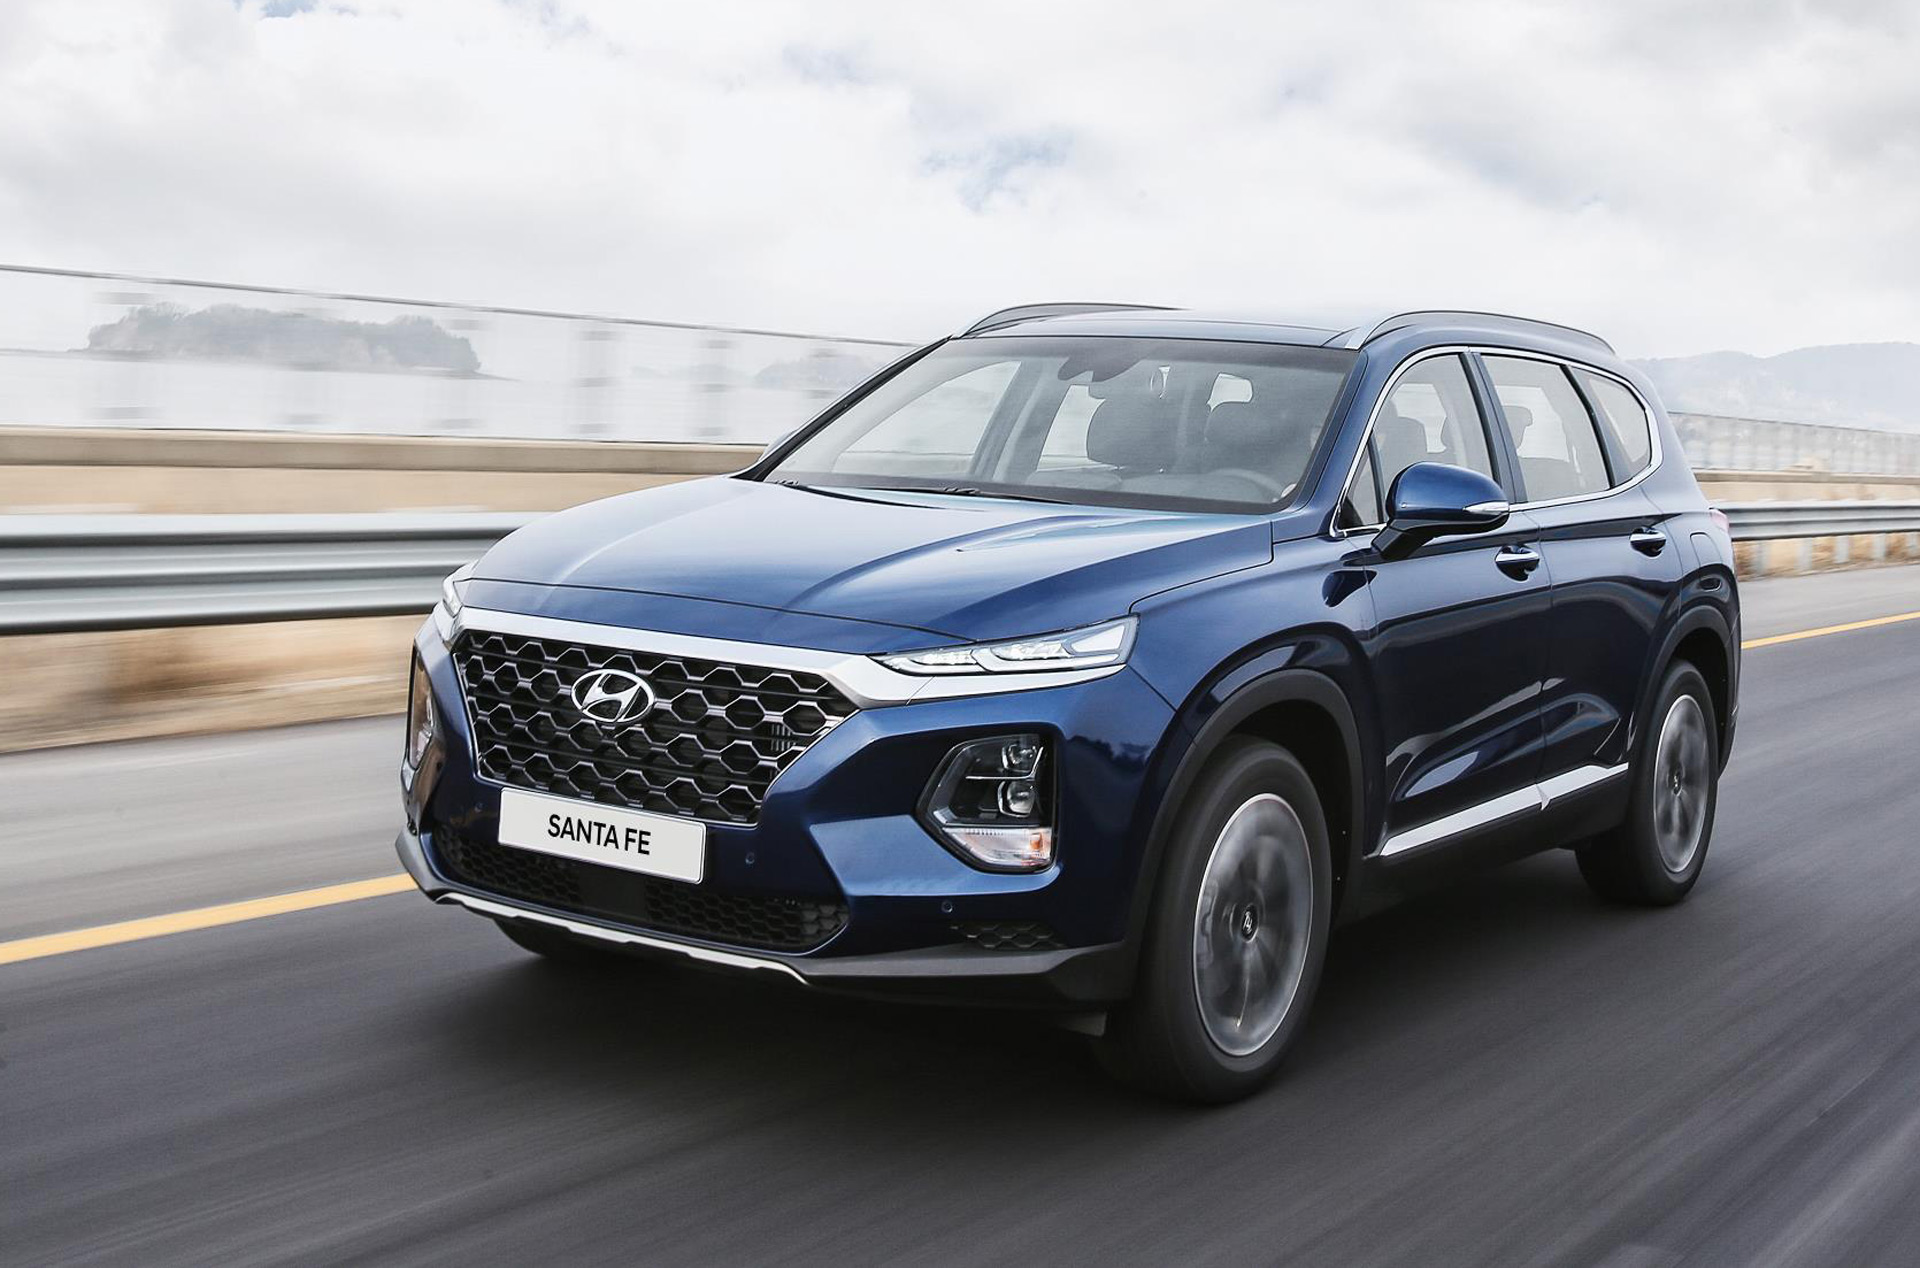 2019 Hyundai Santa Fe: two- and three-row crossover is bigger, squarer, and now has a diesel